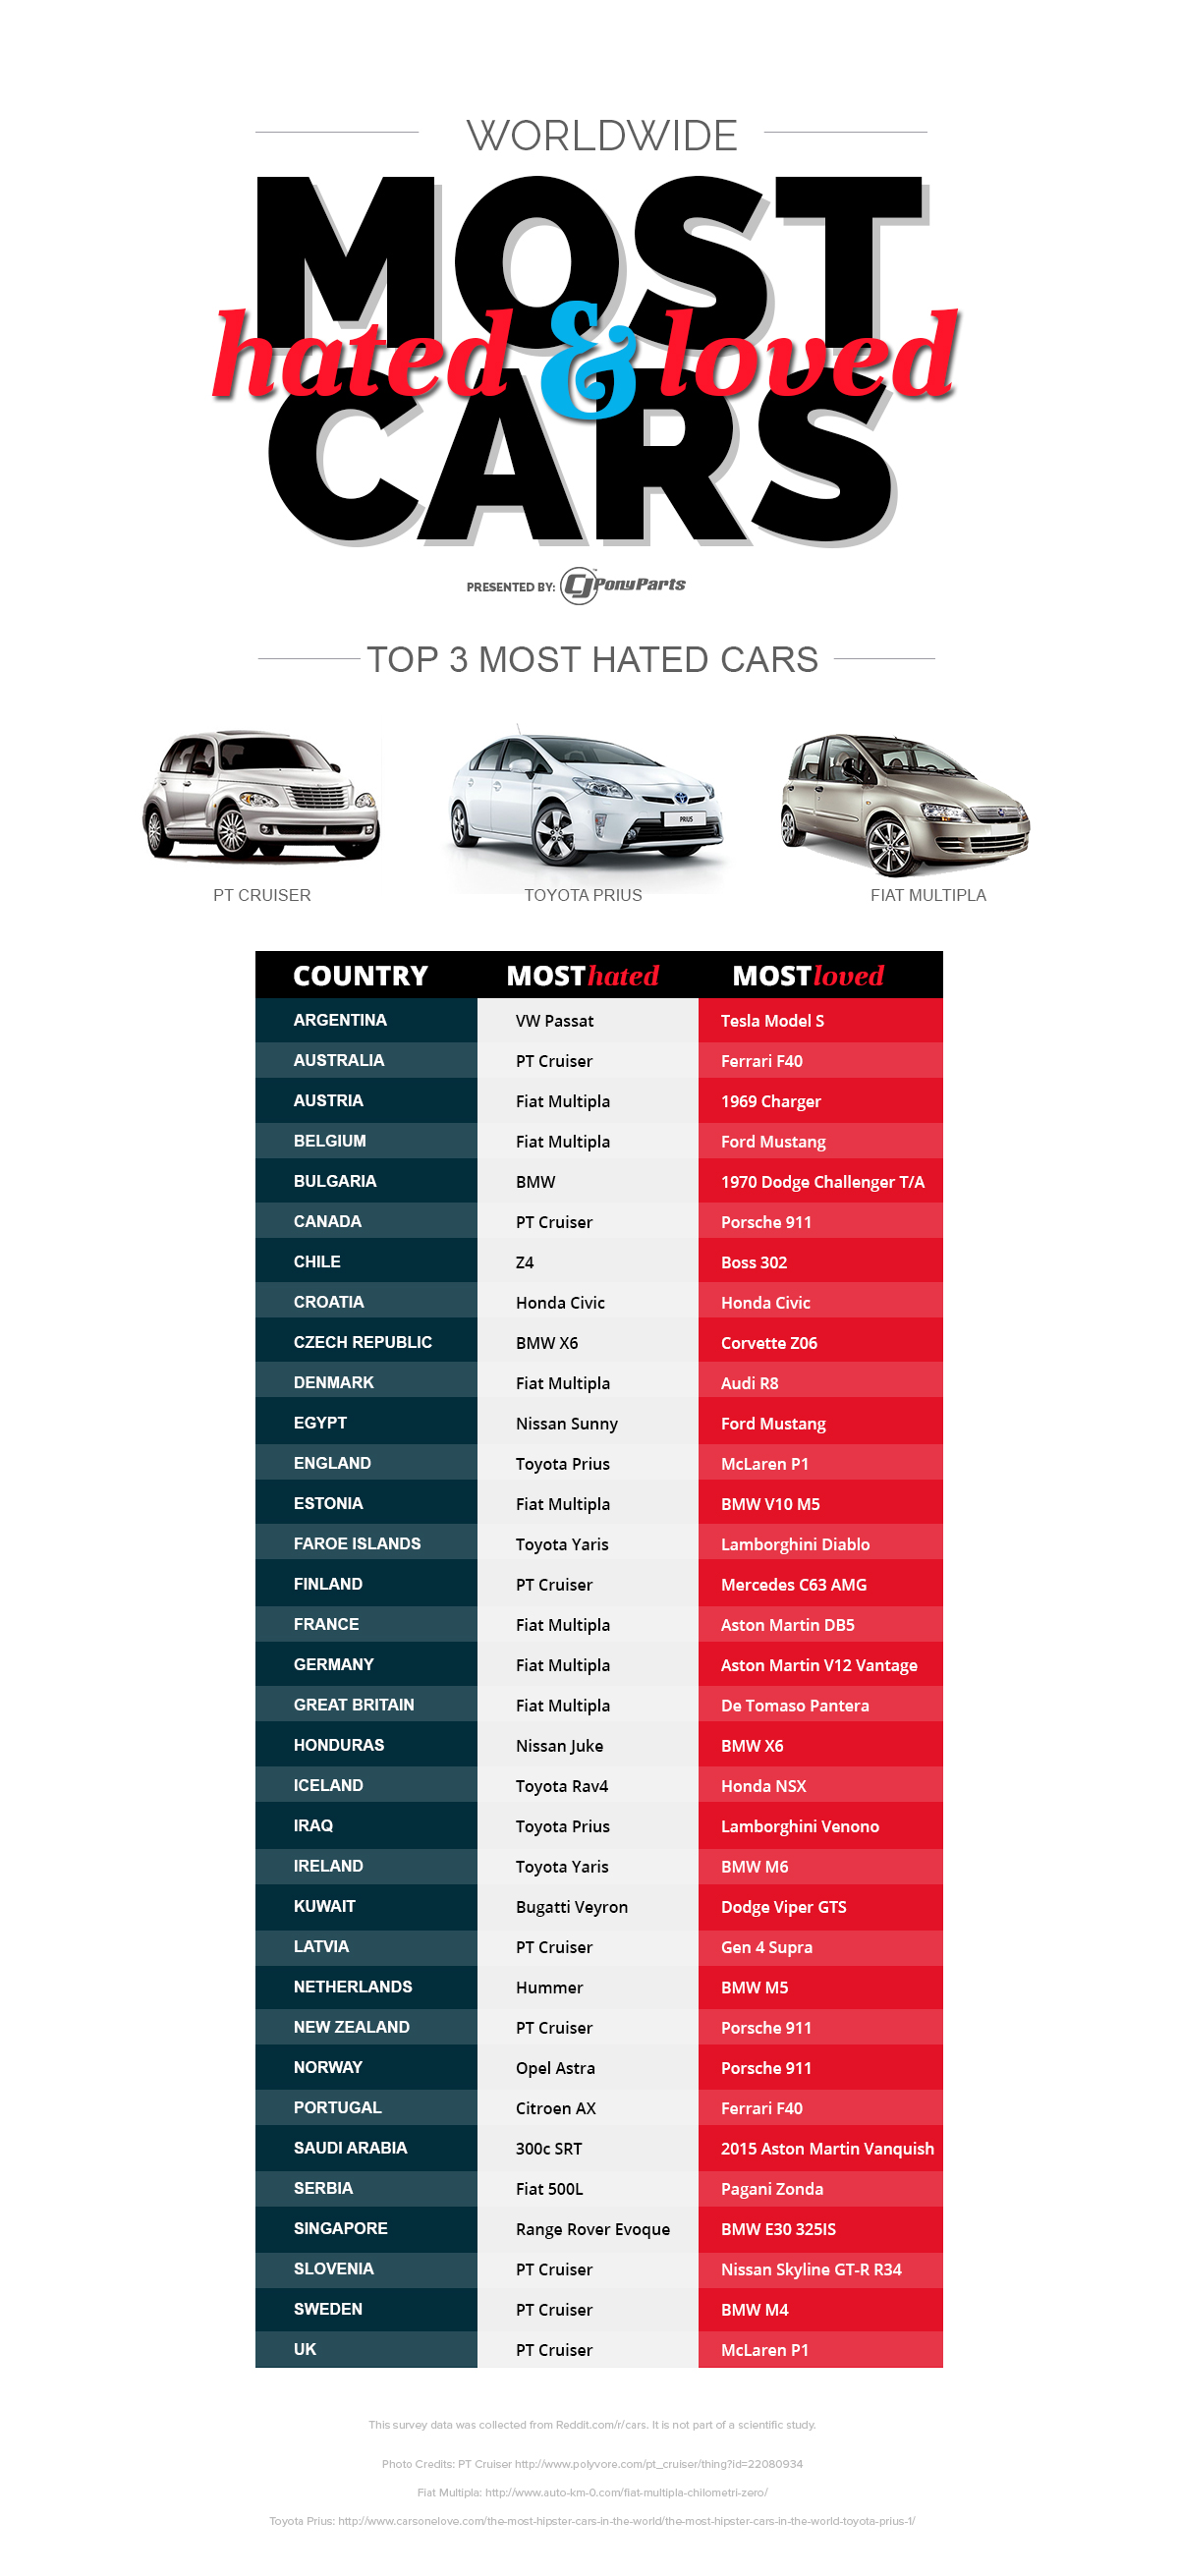 Worldwide-Most-Hated-and-Loved-Cars